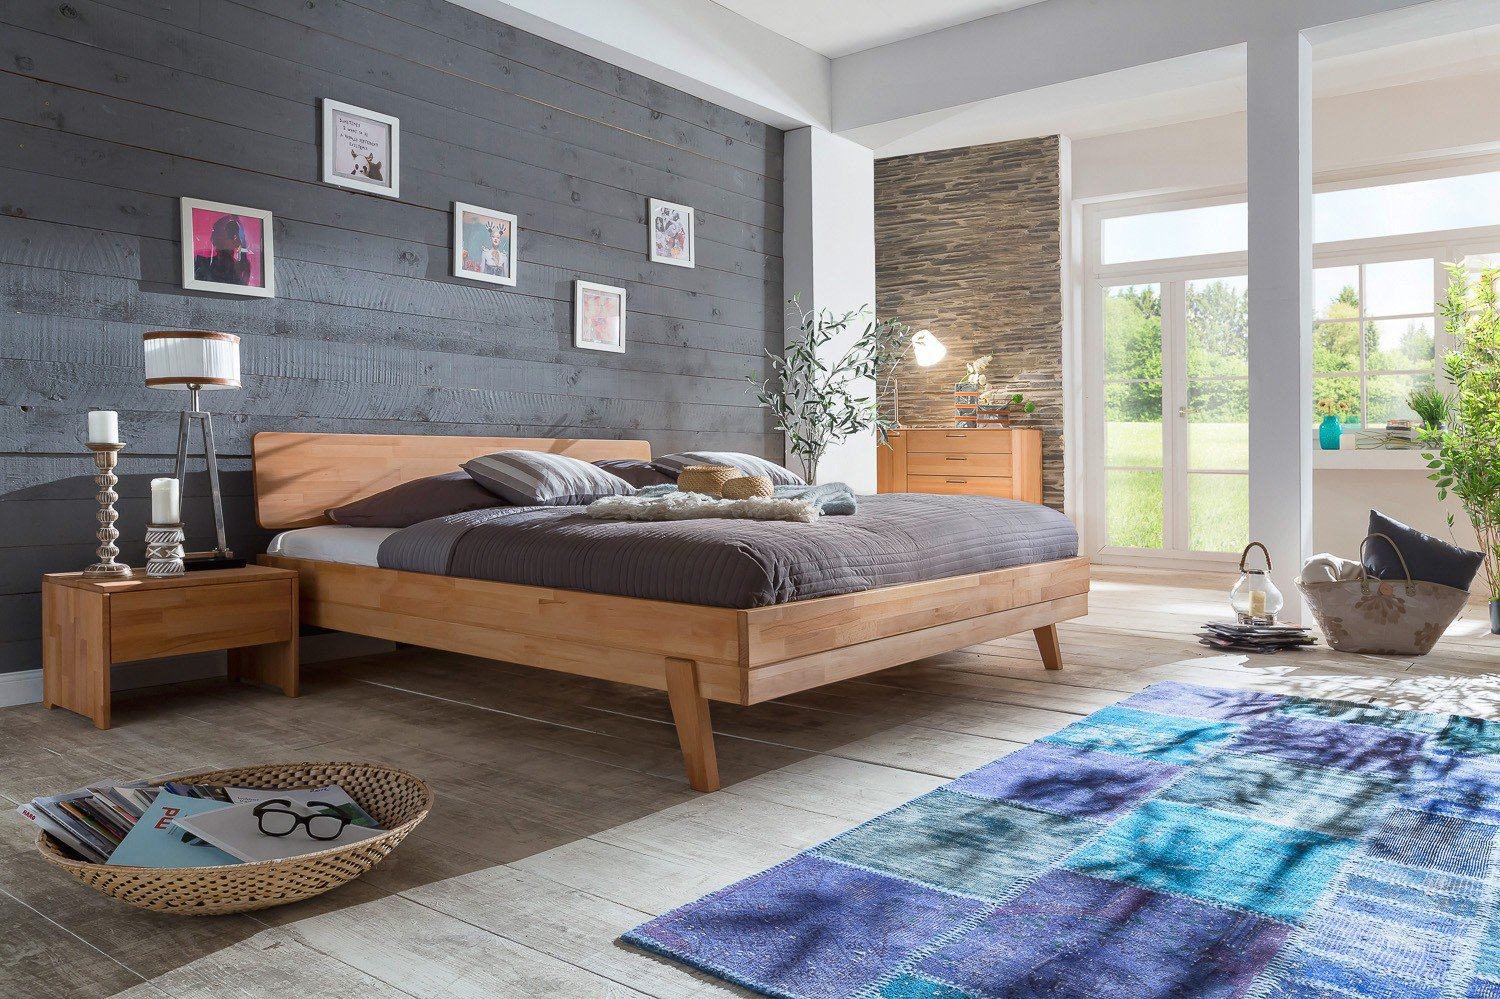 schlafen bei hitze tipps f r sommern chte online m bel magazin. Black Bedroom Furniture Sets. Home Design Ideas